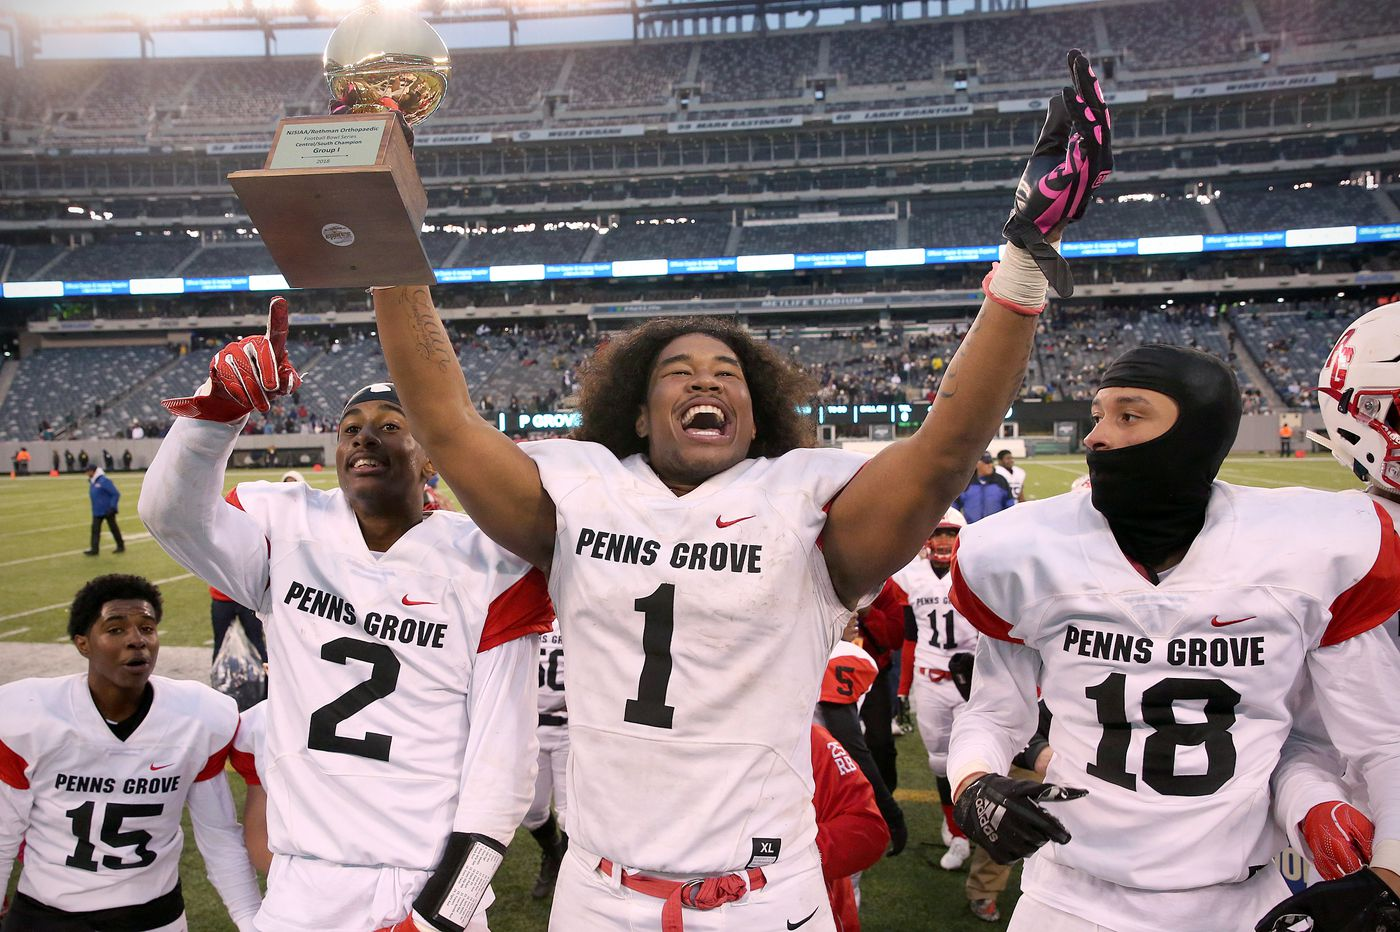 Penns Grove rallies from 20-point deficit to beat Willingboro at MetLife Stadium